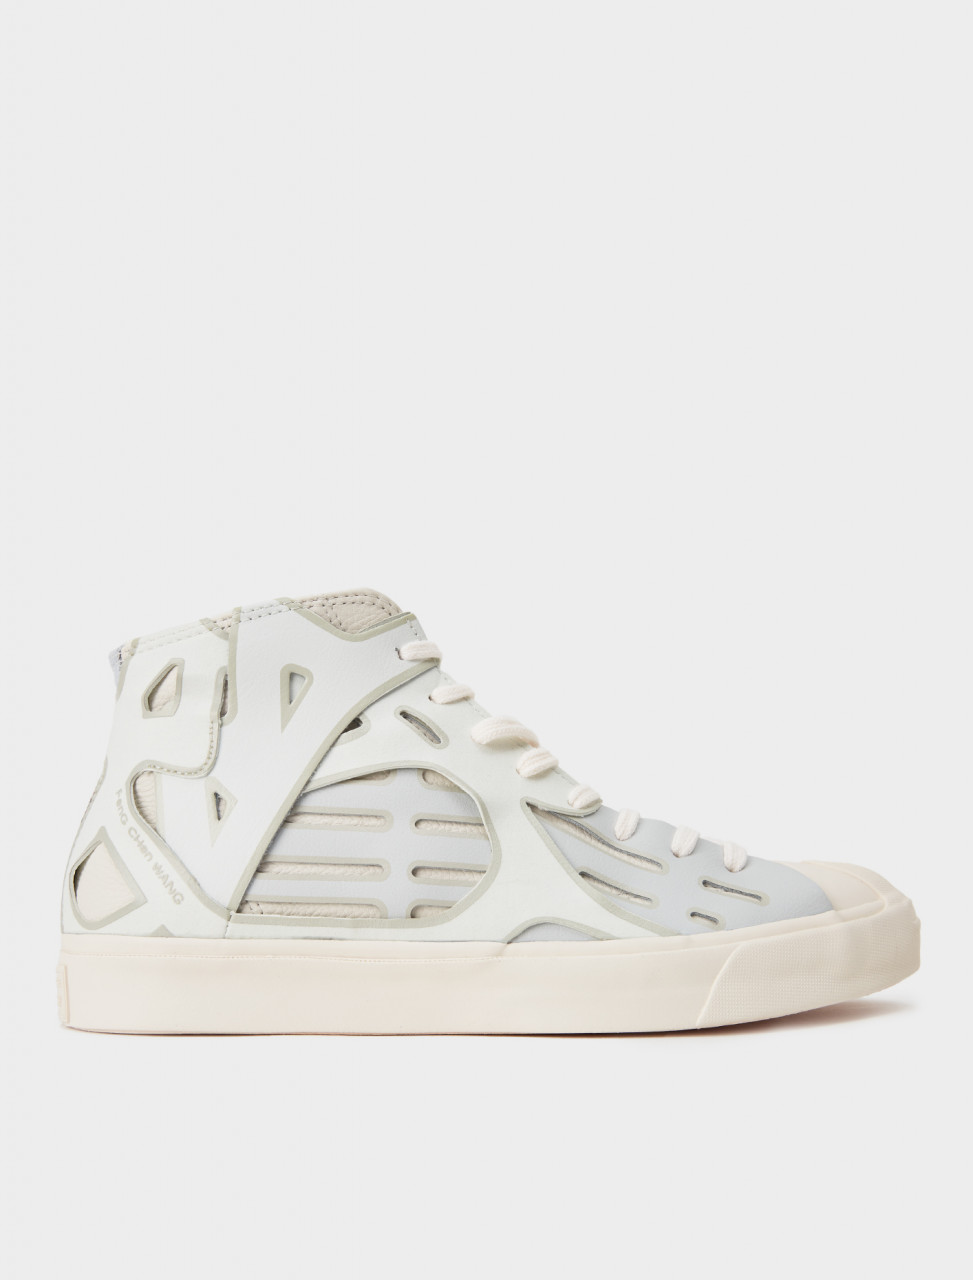 221-169009C-100 CONVERSE X FENG CHEN WANG WHITE Jack Purcell Mid Sea Salt